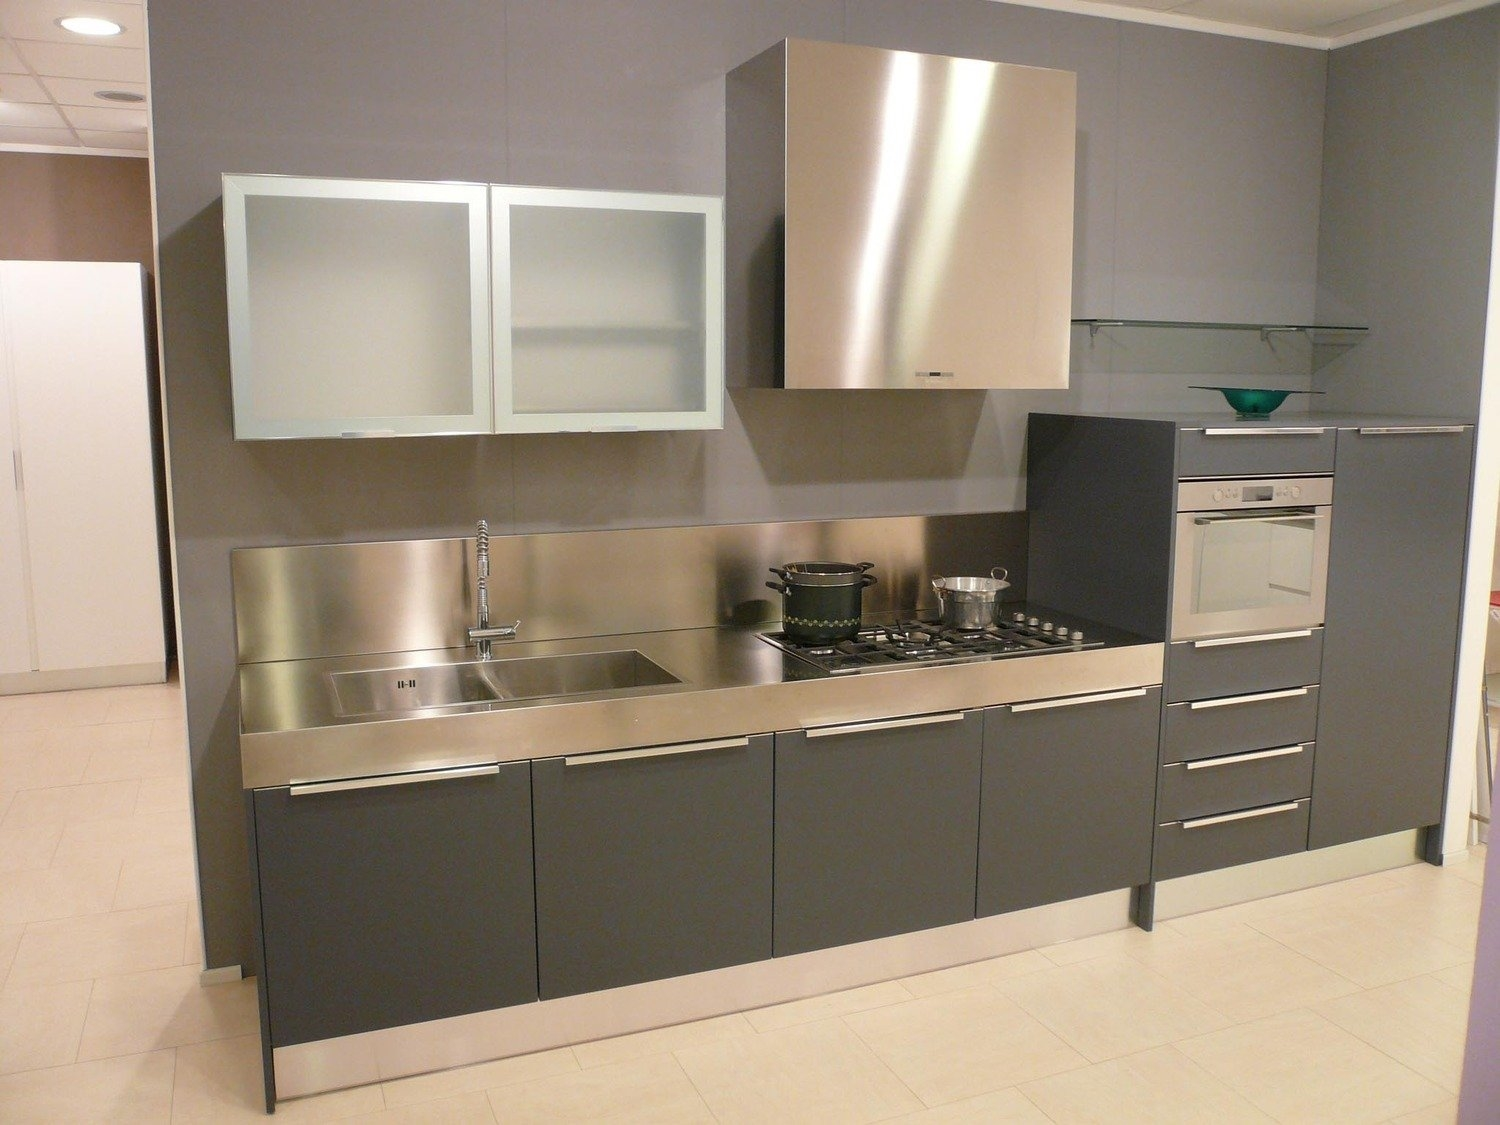 Stunning Ar Due Cucine Contemporary - Brentwoodseasidecabins.com ...